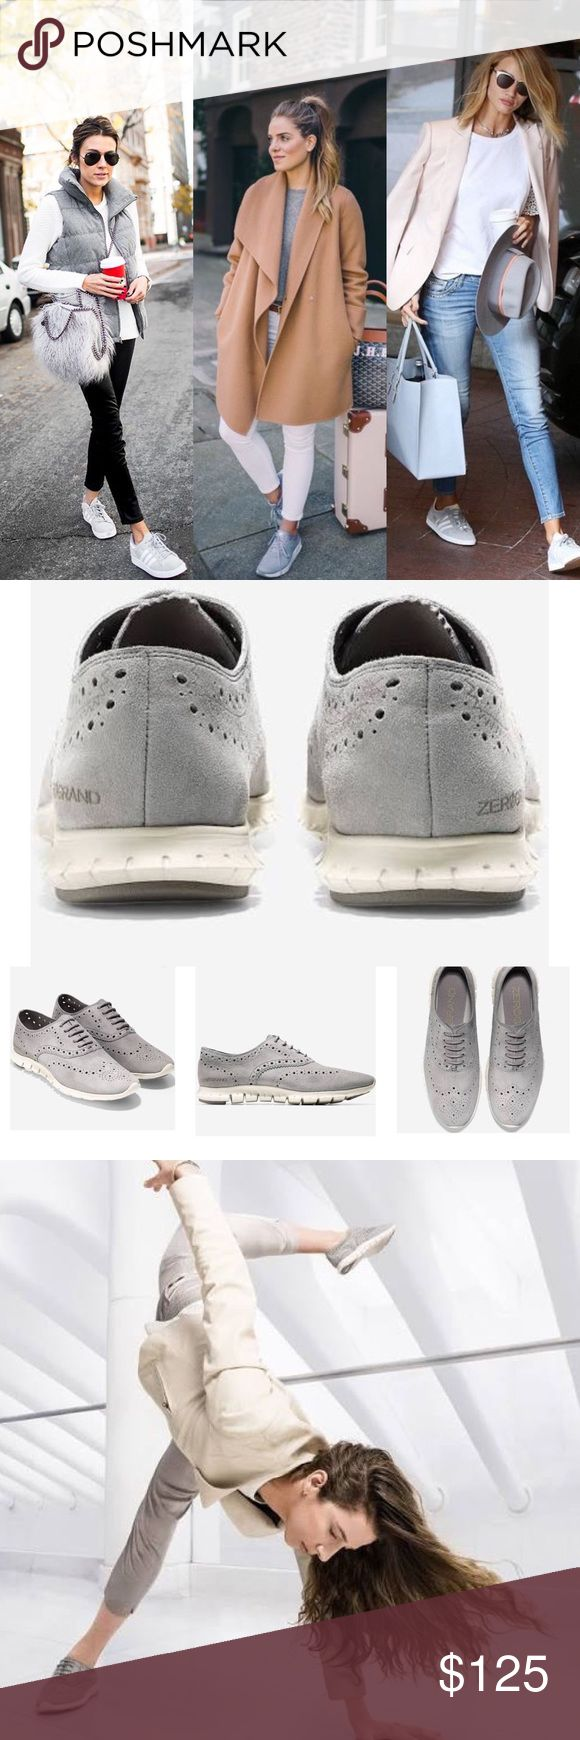 Cole Haan grey wingtip oxford-LIKE NEW From Cole Haan website: Boy meets girl in our best-selling, most sought-after women's ZERØGRAND Oxford styles that perfectly balance masculine and feminine with panache. Crafted from soft suede with laser-cut details, they feature ivory rubber soles with Grand.OS technology that are carefully constructed with a focus on flexibility and reduced weight. These customer favorites are a casual styling game changer.  Cushioned with all new Cole Haan Grand.OS…